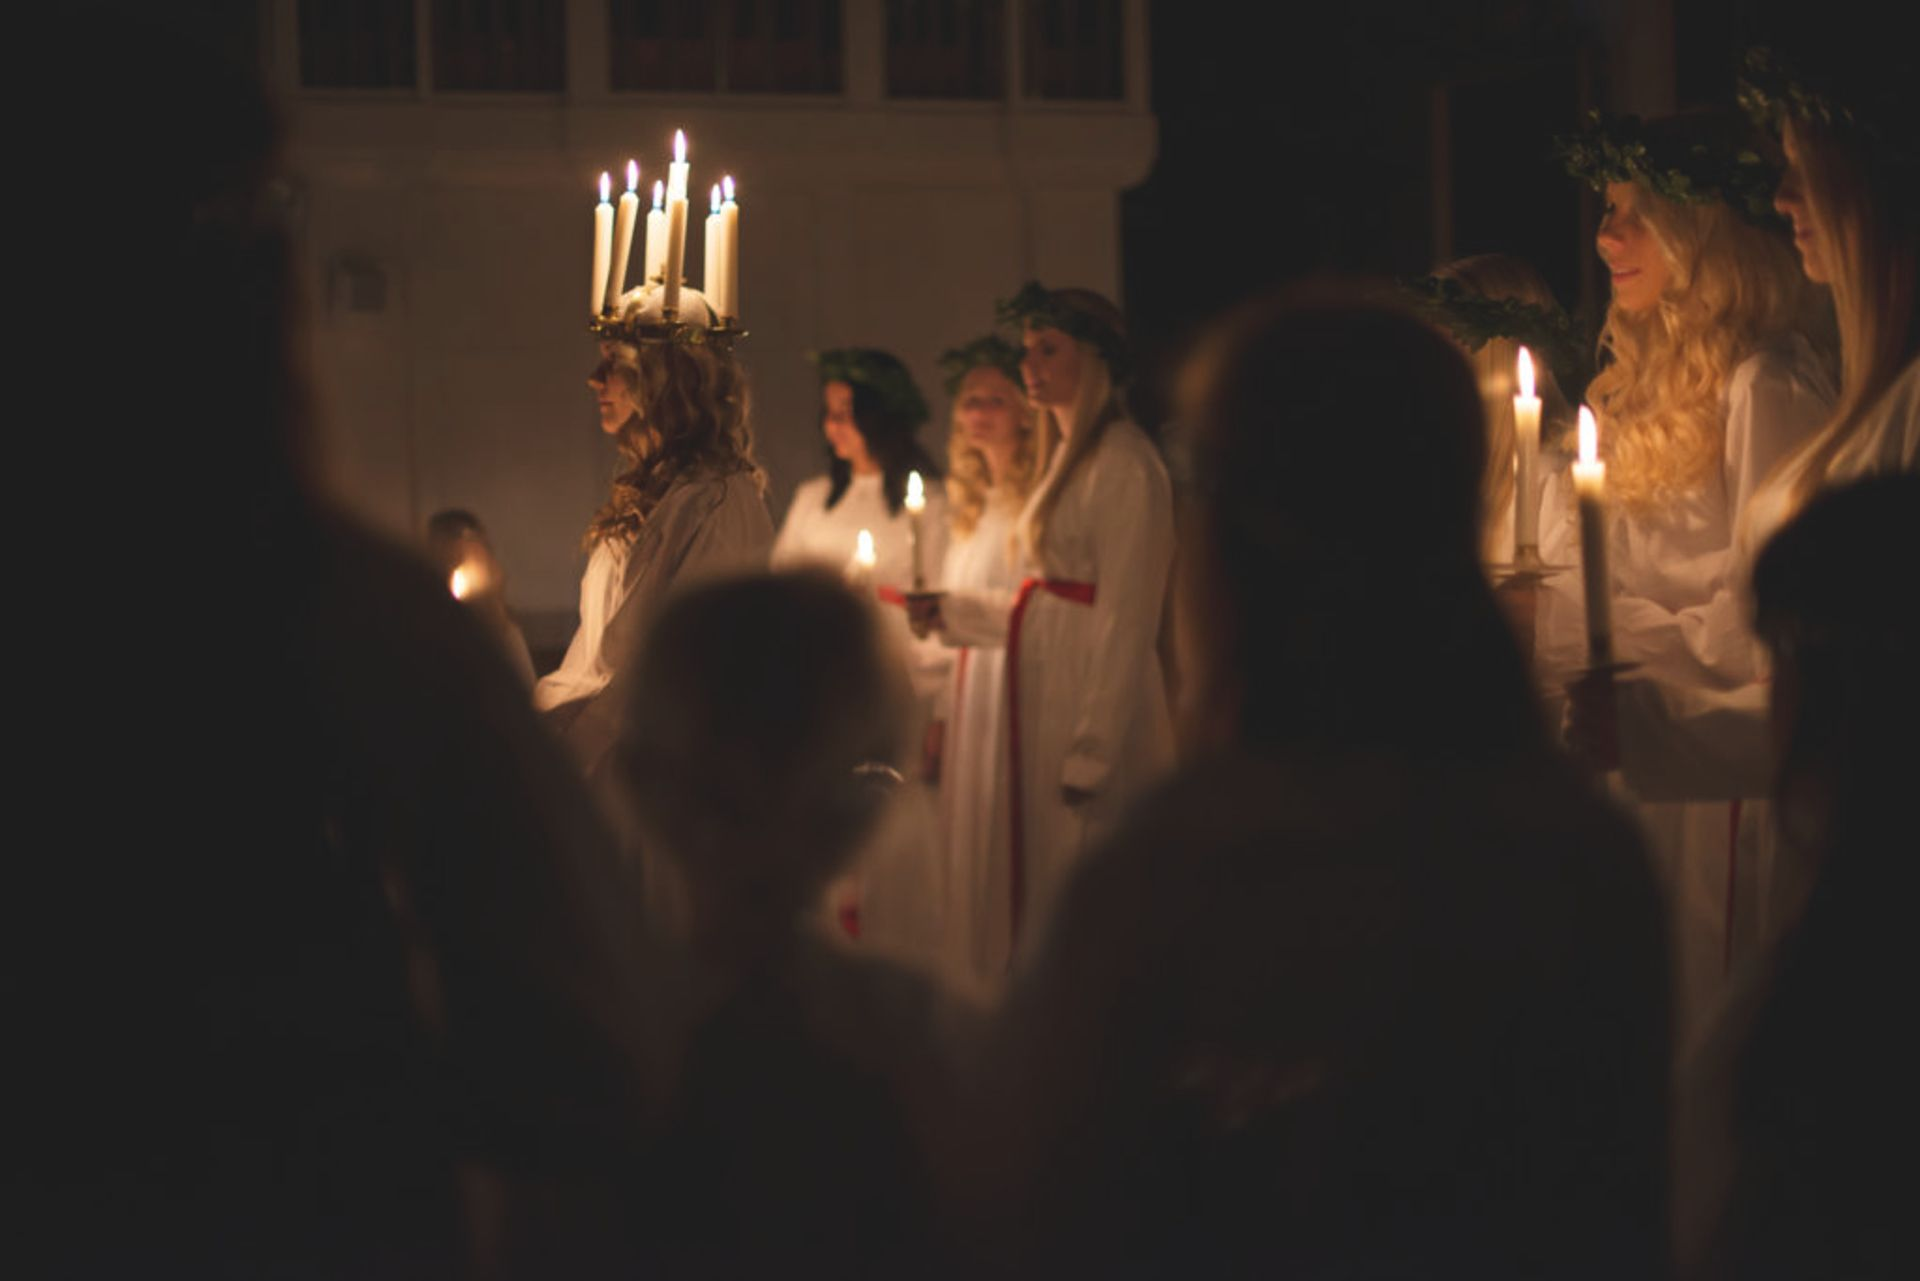 People holding candles as a part of a Lucia celebration.